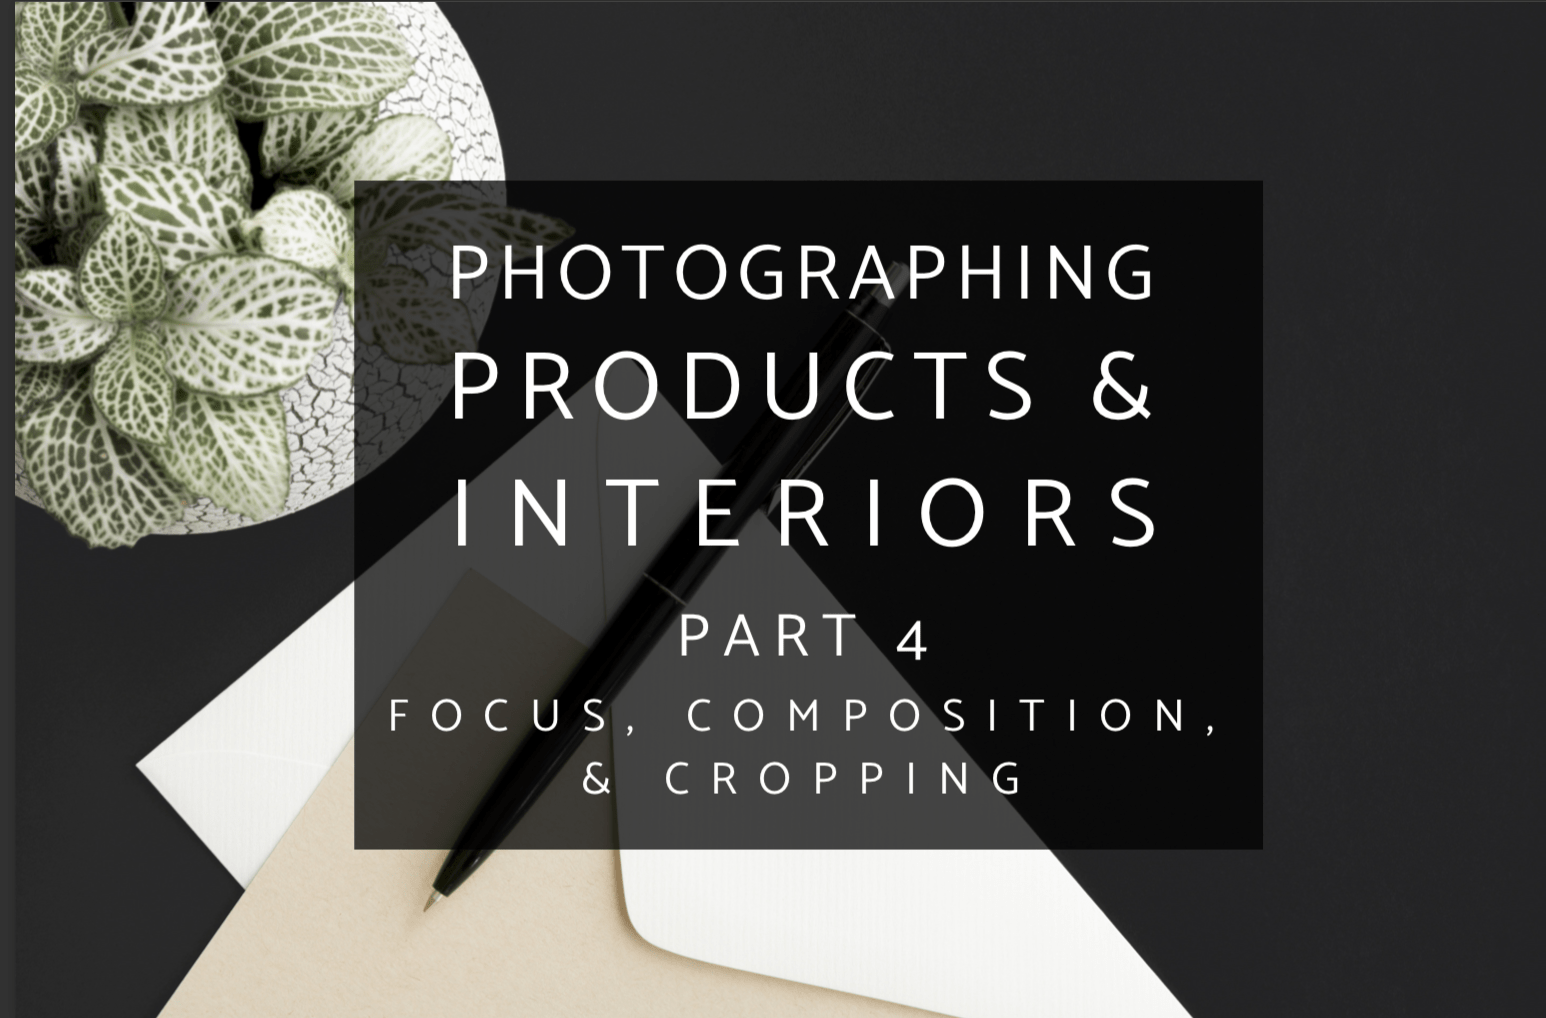 This is part 4 of my interior and product photography series: composition and cropping when photographing interiors and products. #interiorphotography #productphotography #photography #blogphotography